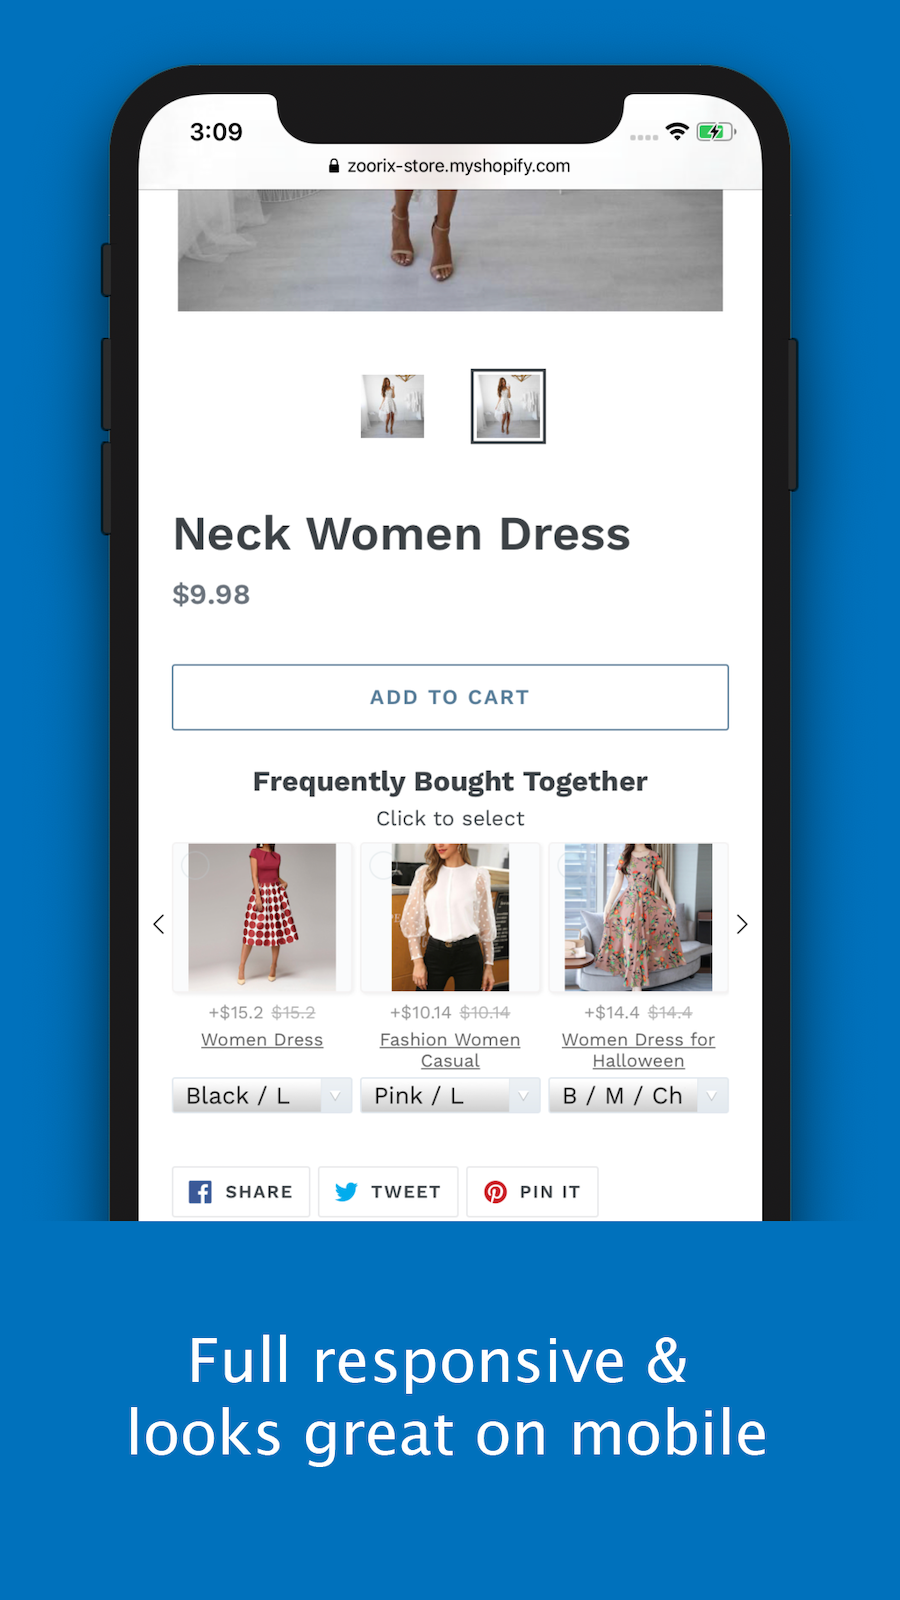 Upsell with Full responsive and looks great on mobile devices